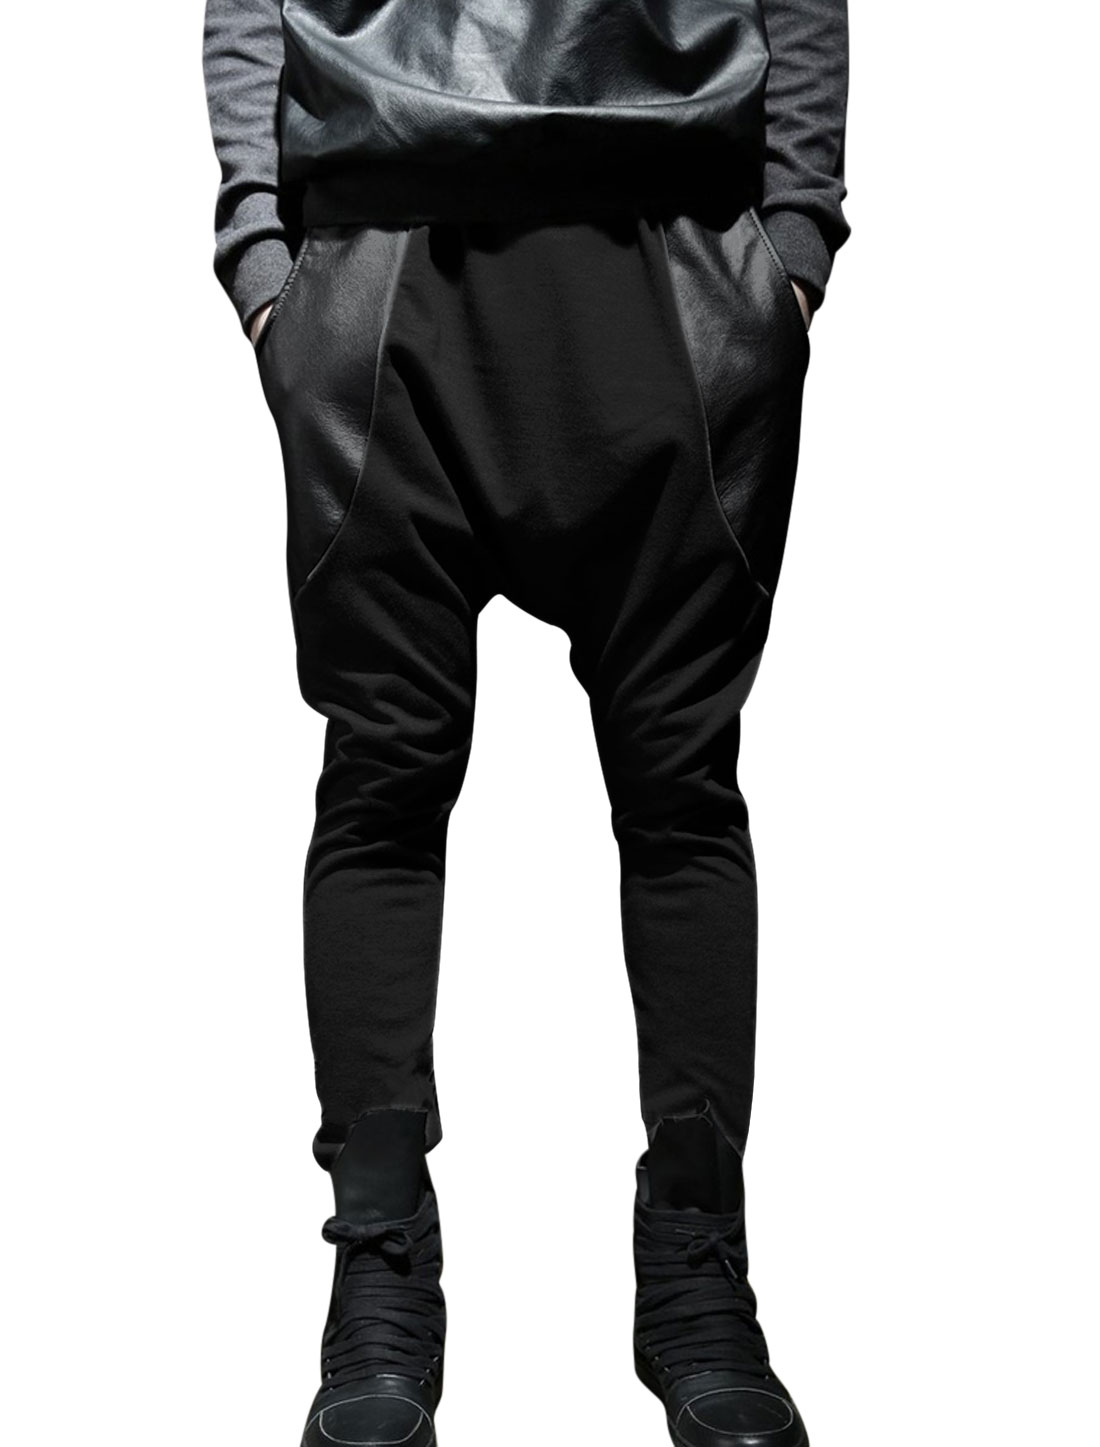 Men Drawstring Waist Loose Imitation Leather Panel Harem Pants Black W30